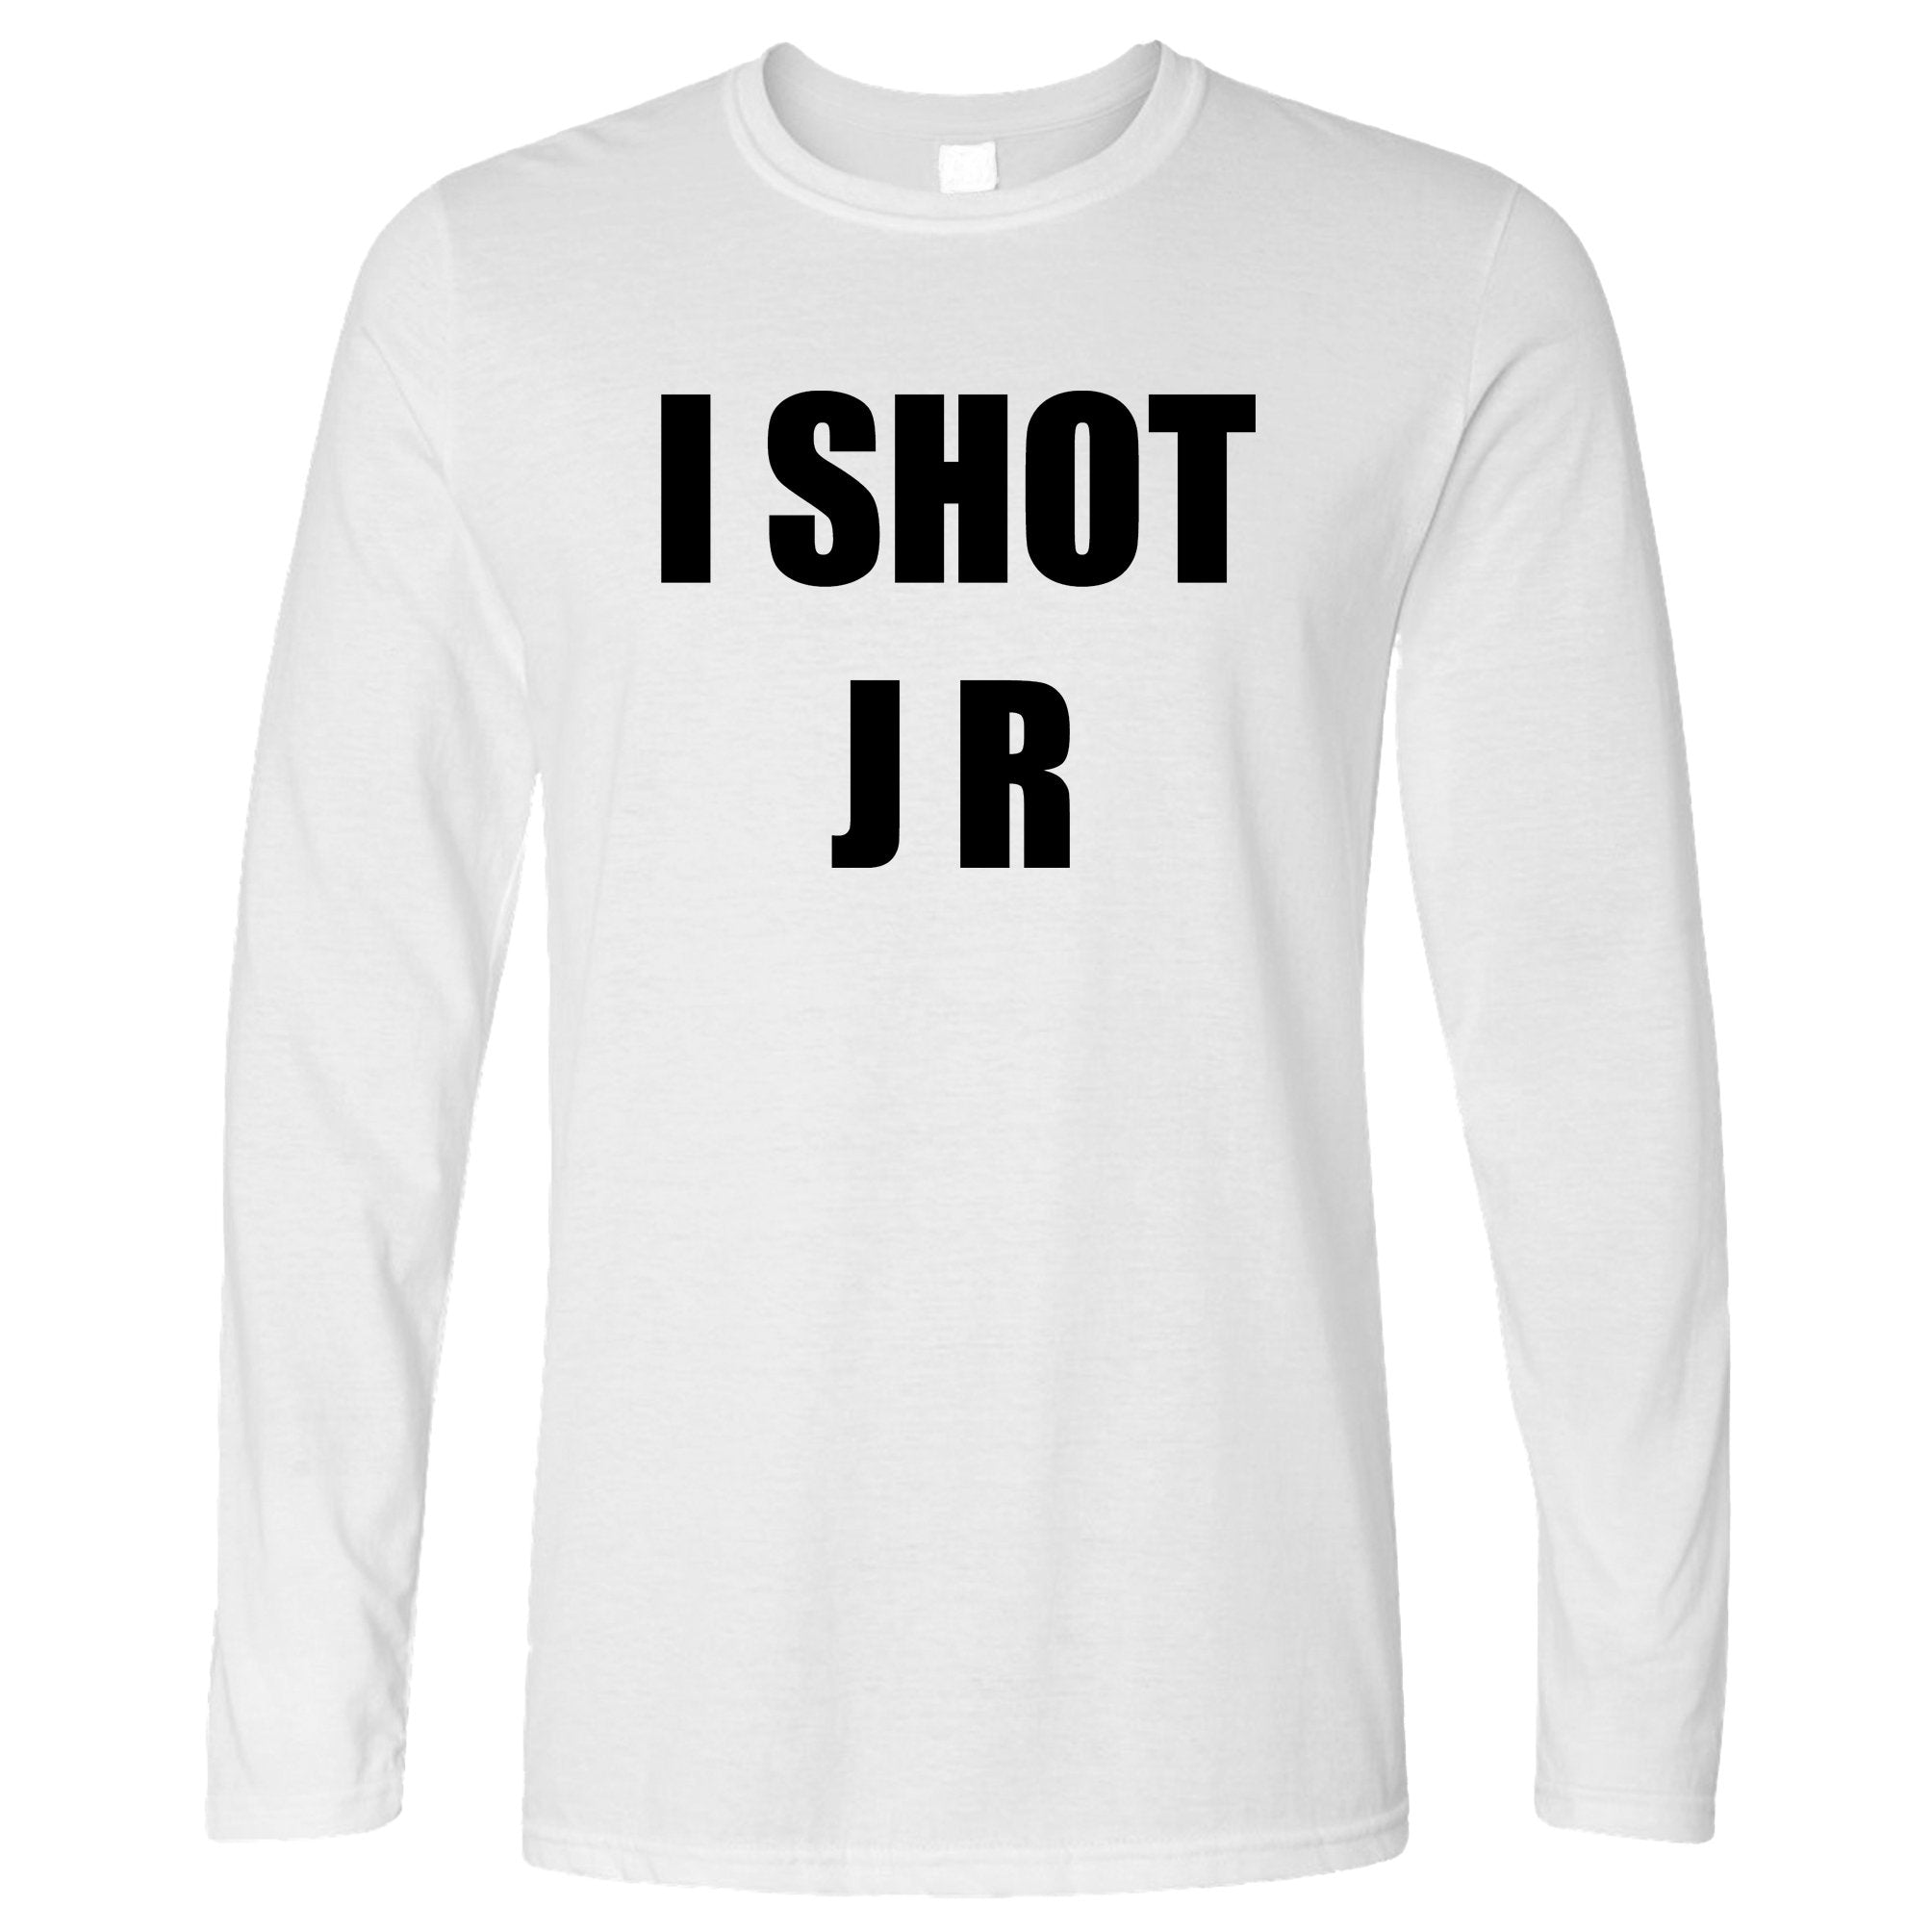 TV Parody Long Sleeve I Shot J R Ewing Slogan T-Shirt